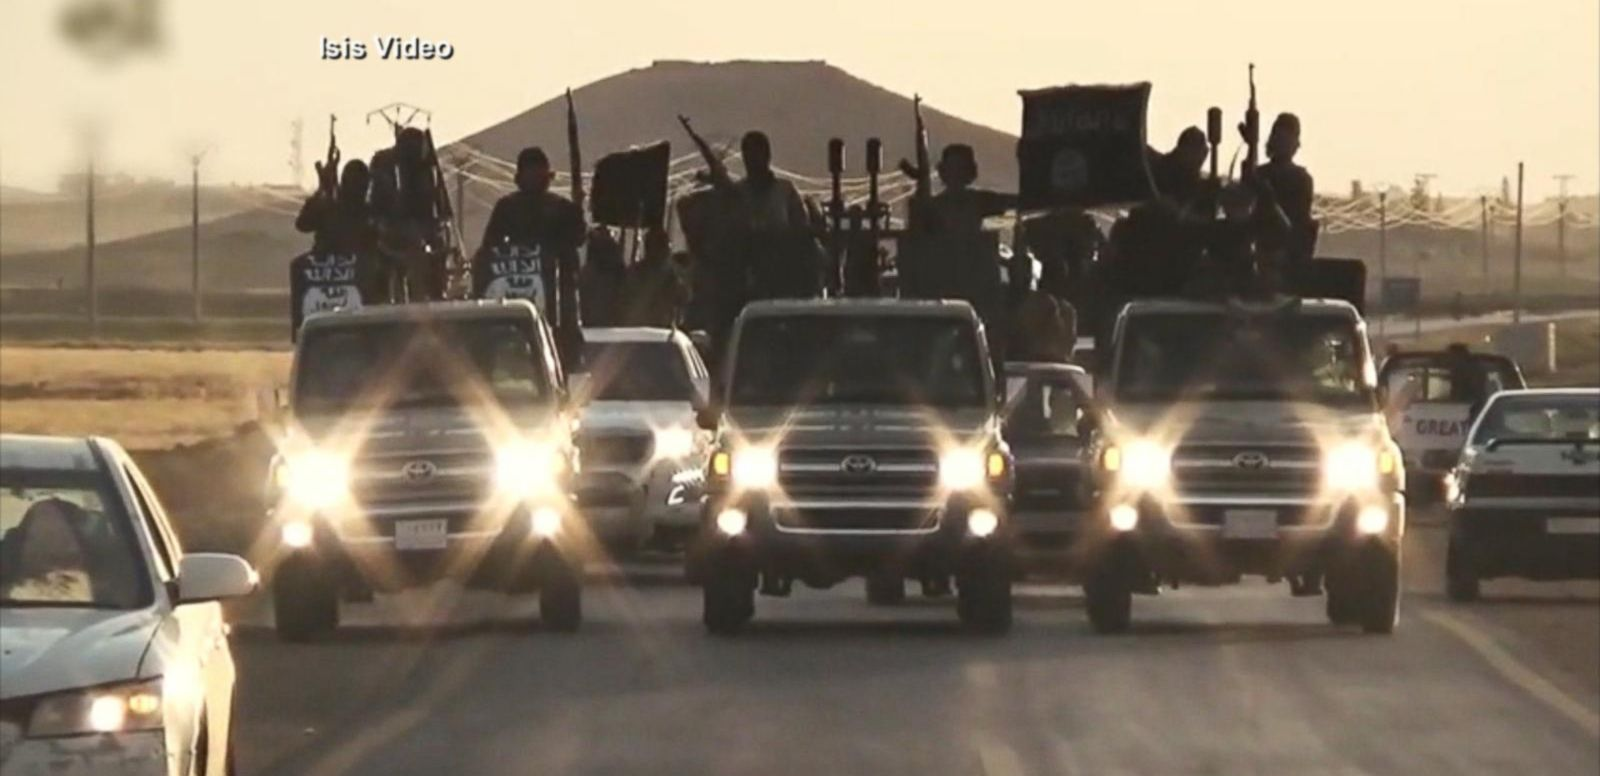 VIDEO: Islamic State Hacking Division Threatens US Service Members